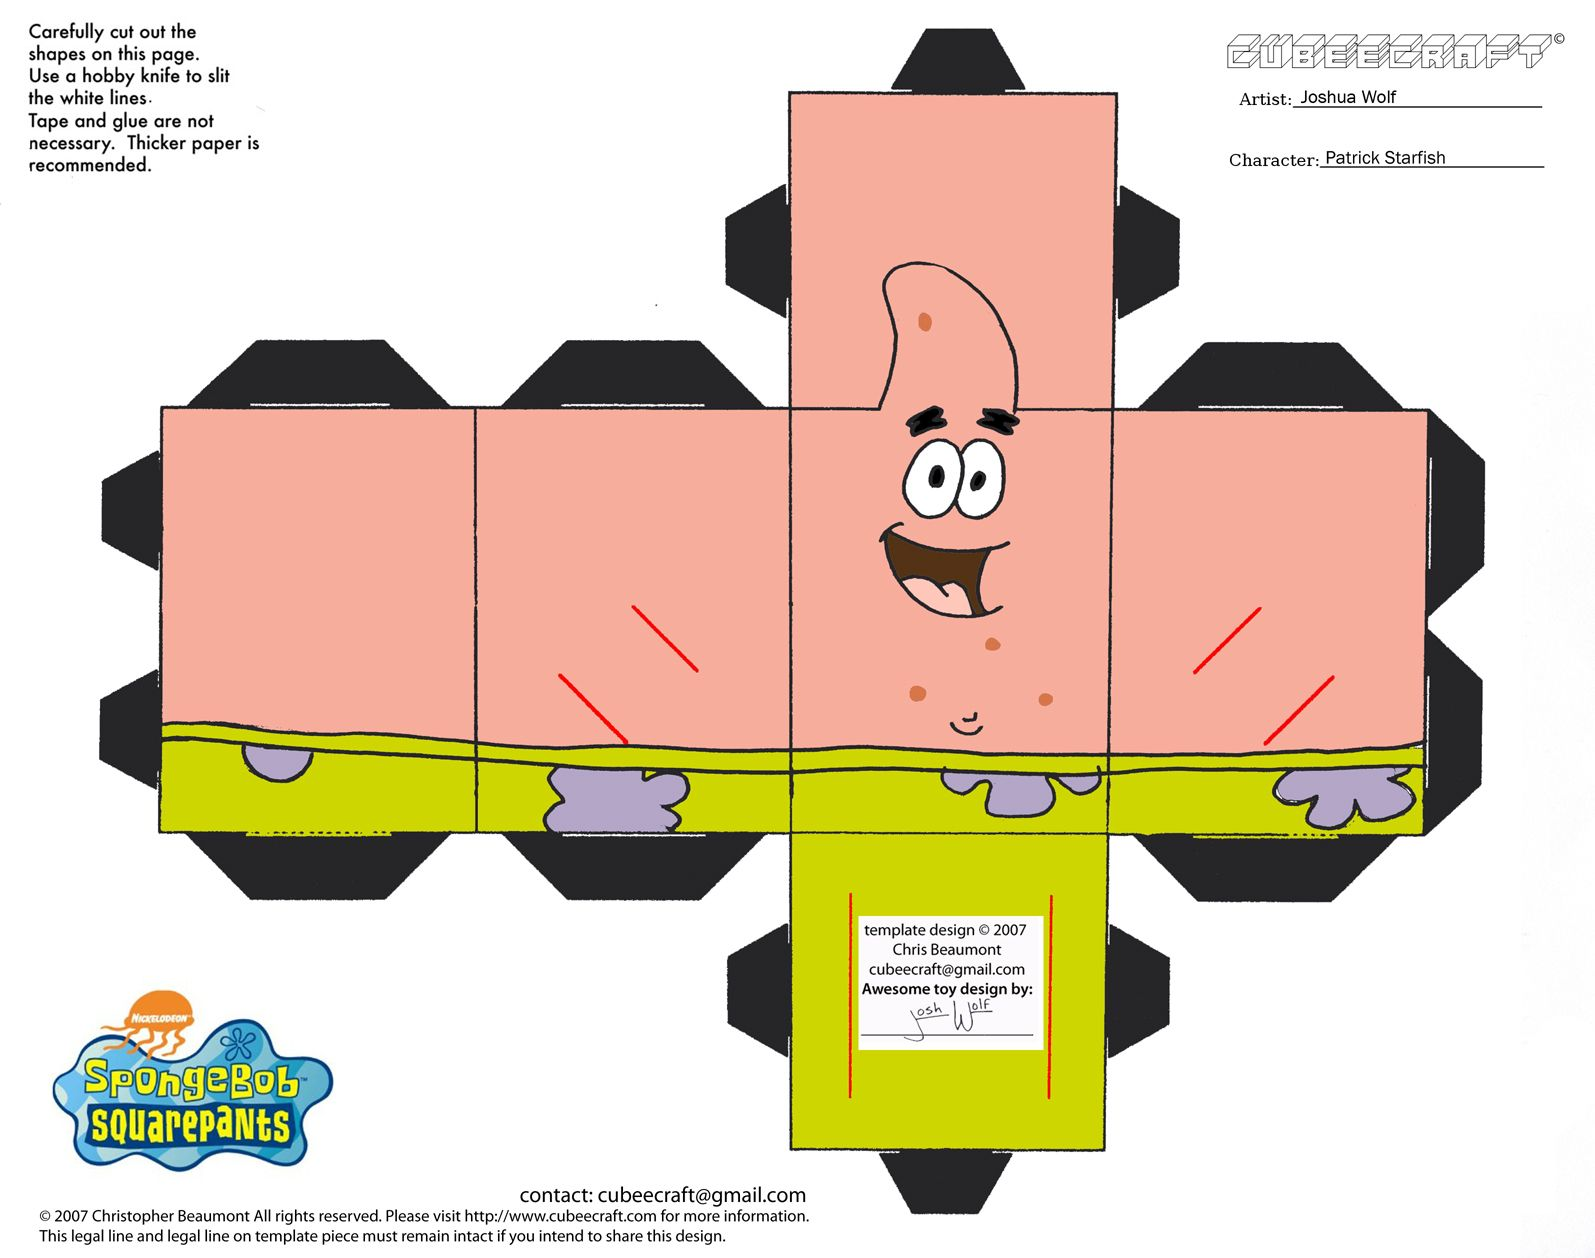 Spongebob 3d cut out printable paper crafts projects to try spongebob 3d cut out printable paper crafts pronofoot35fo Choice Image